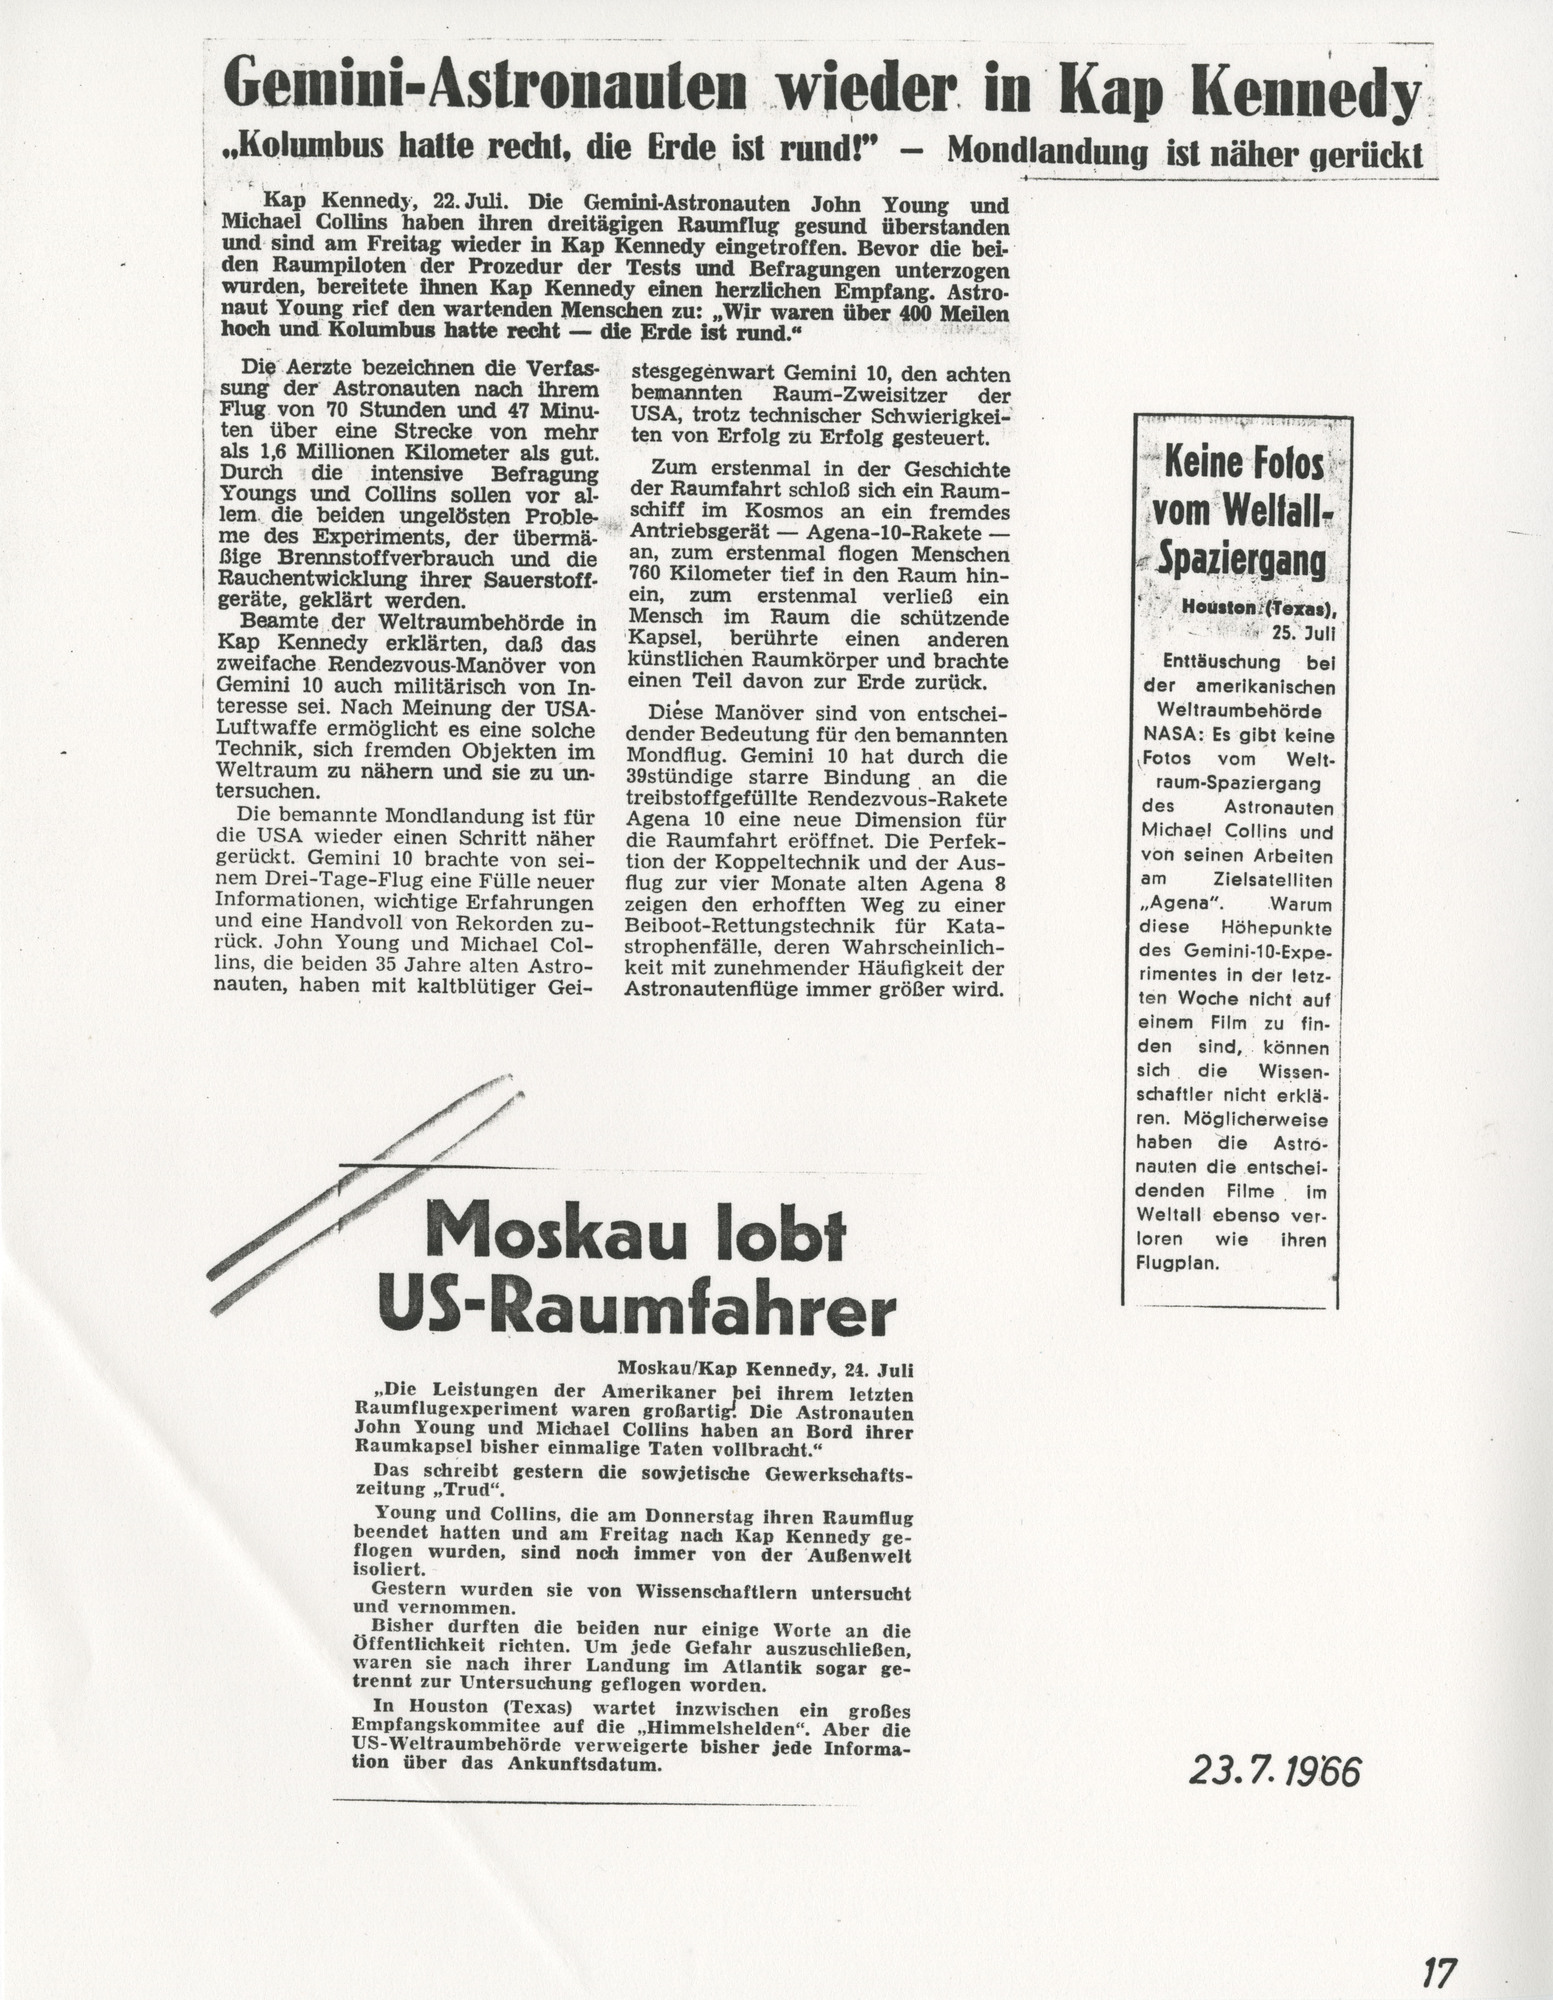 http://spec.lib.vt.edu/pickup/Omeka_upload/Ms1989-029_B07_F3_Clippings_1966_0722_03.jpg